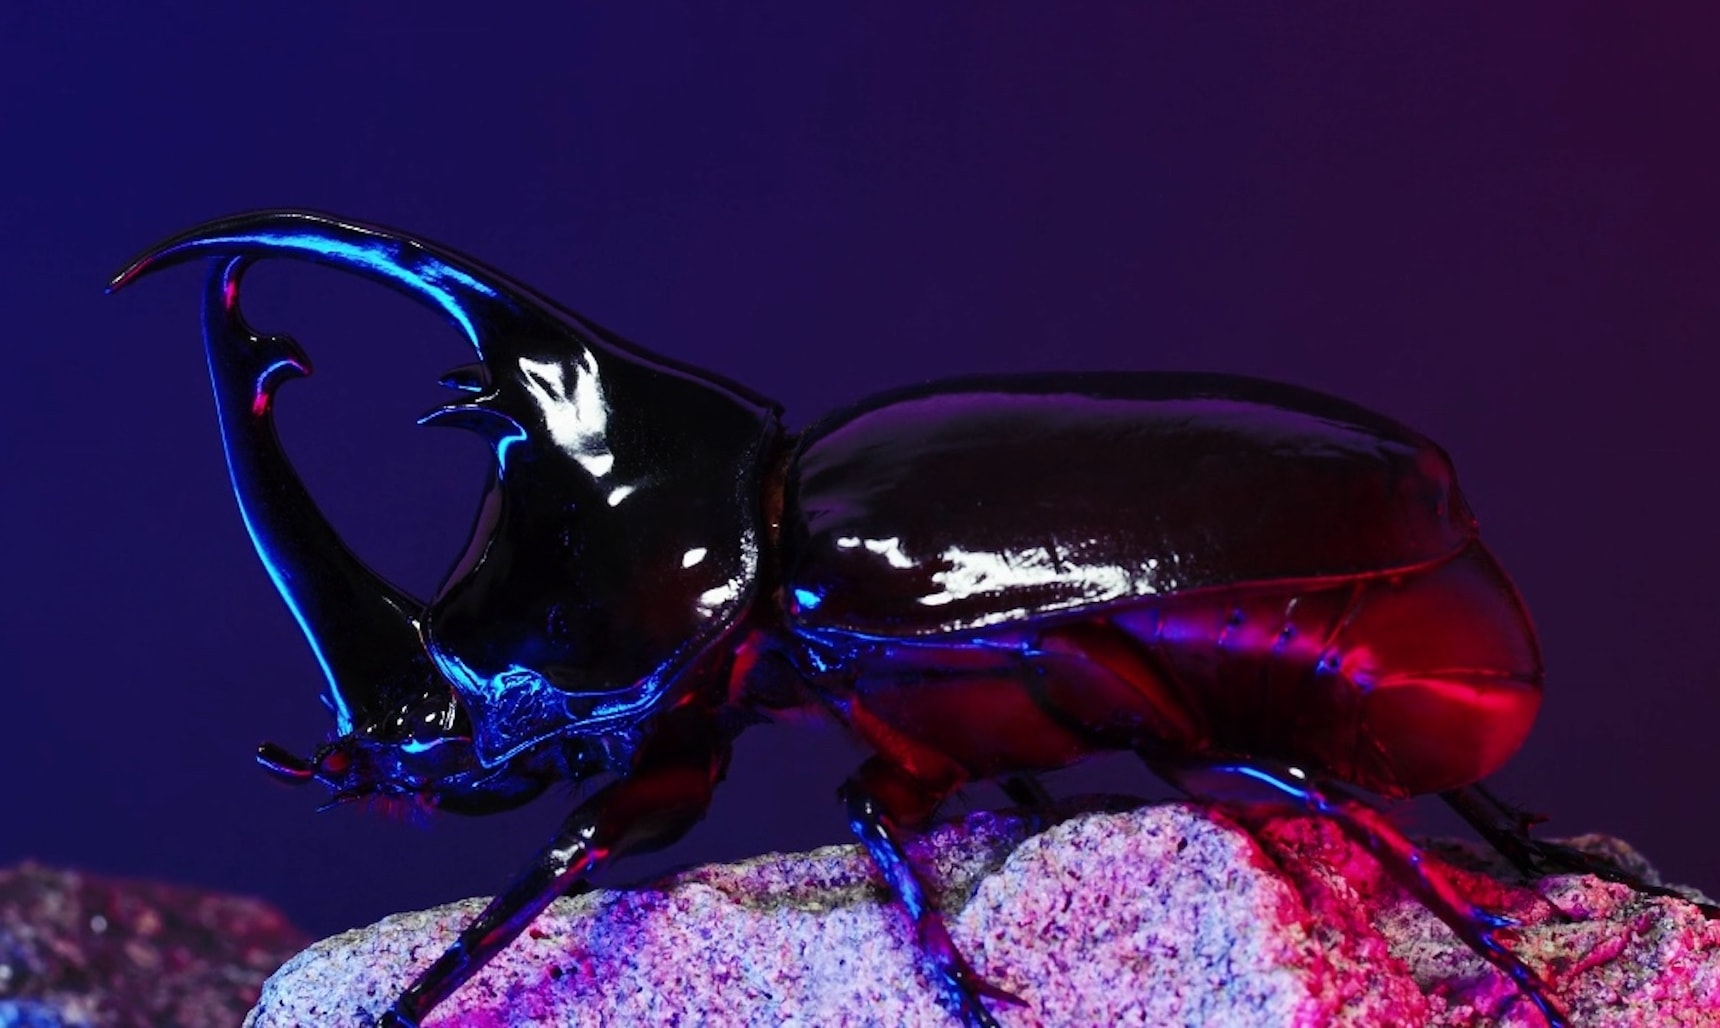 Stag-beetle in front of dark violet background